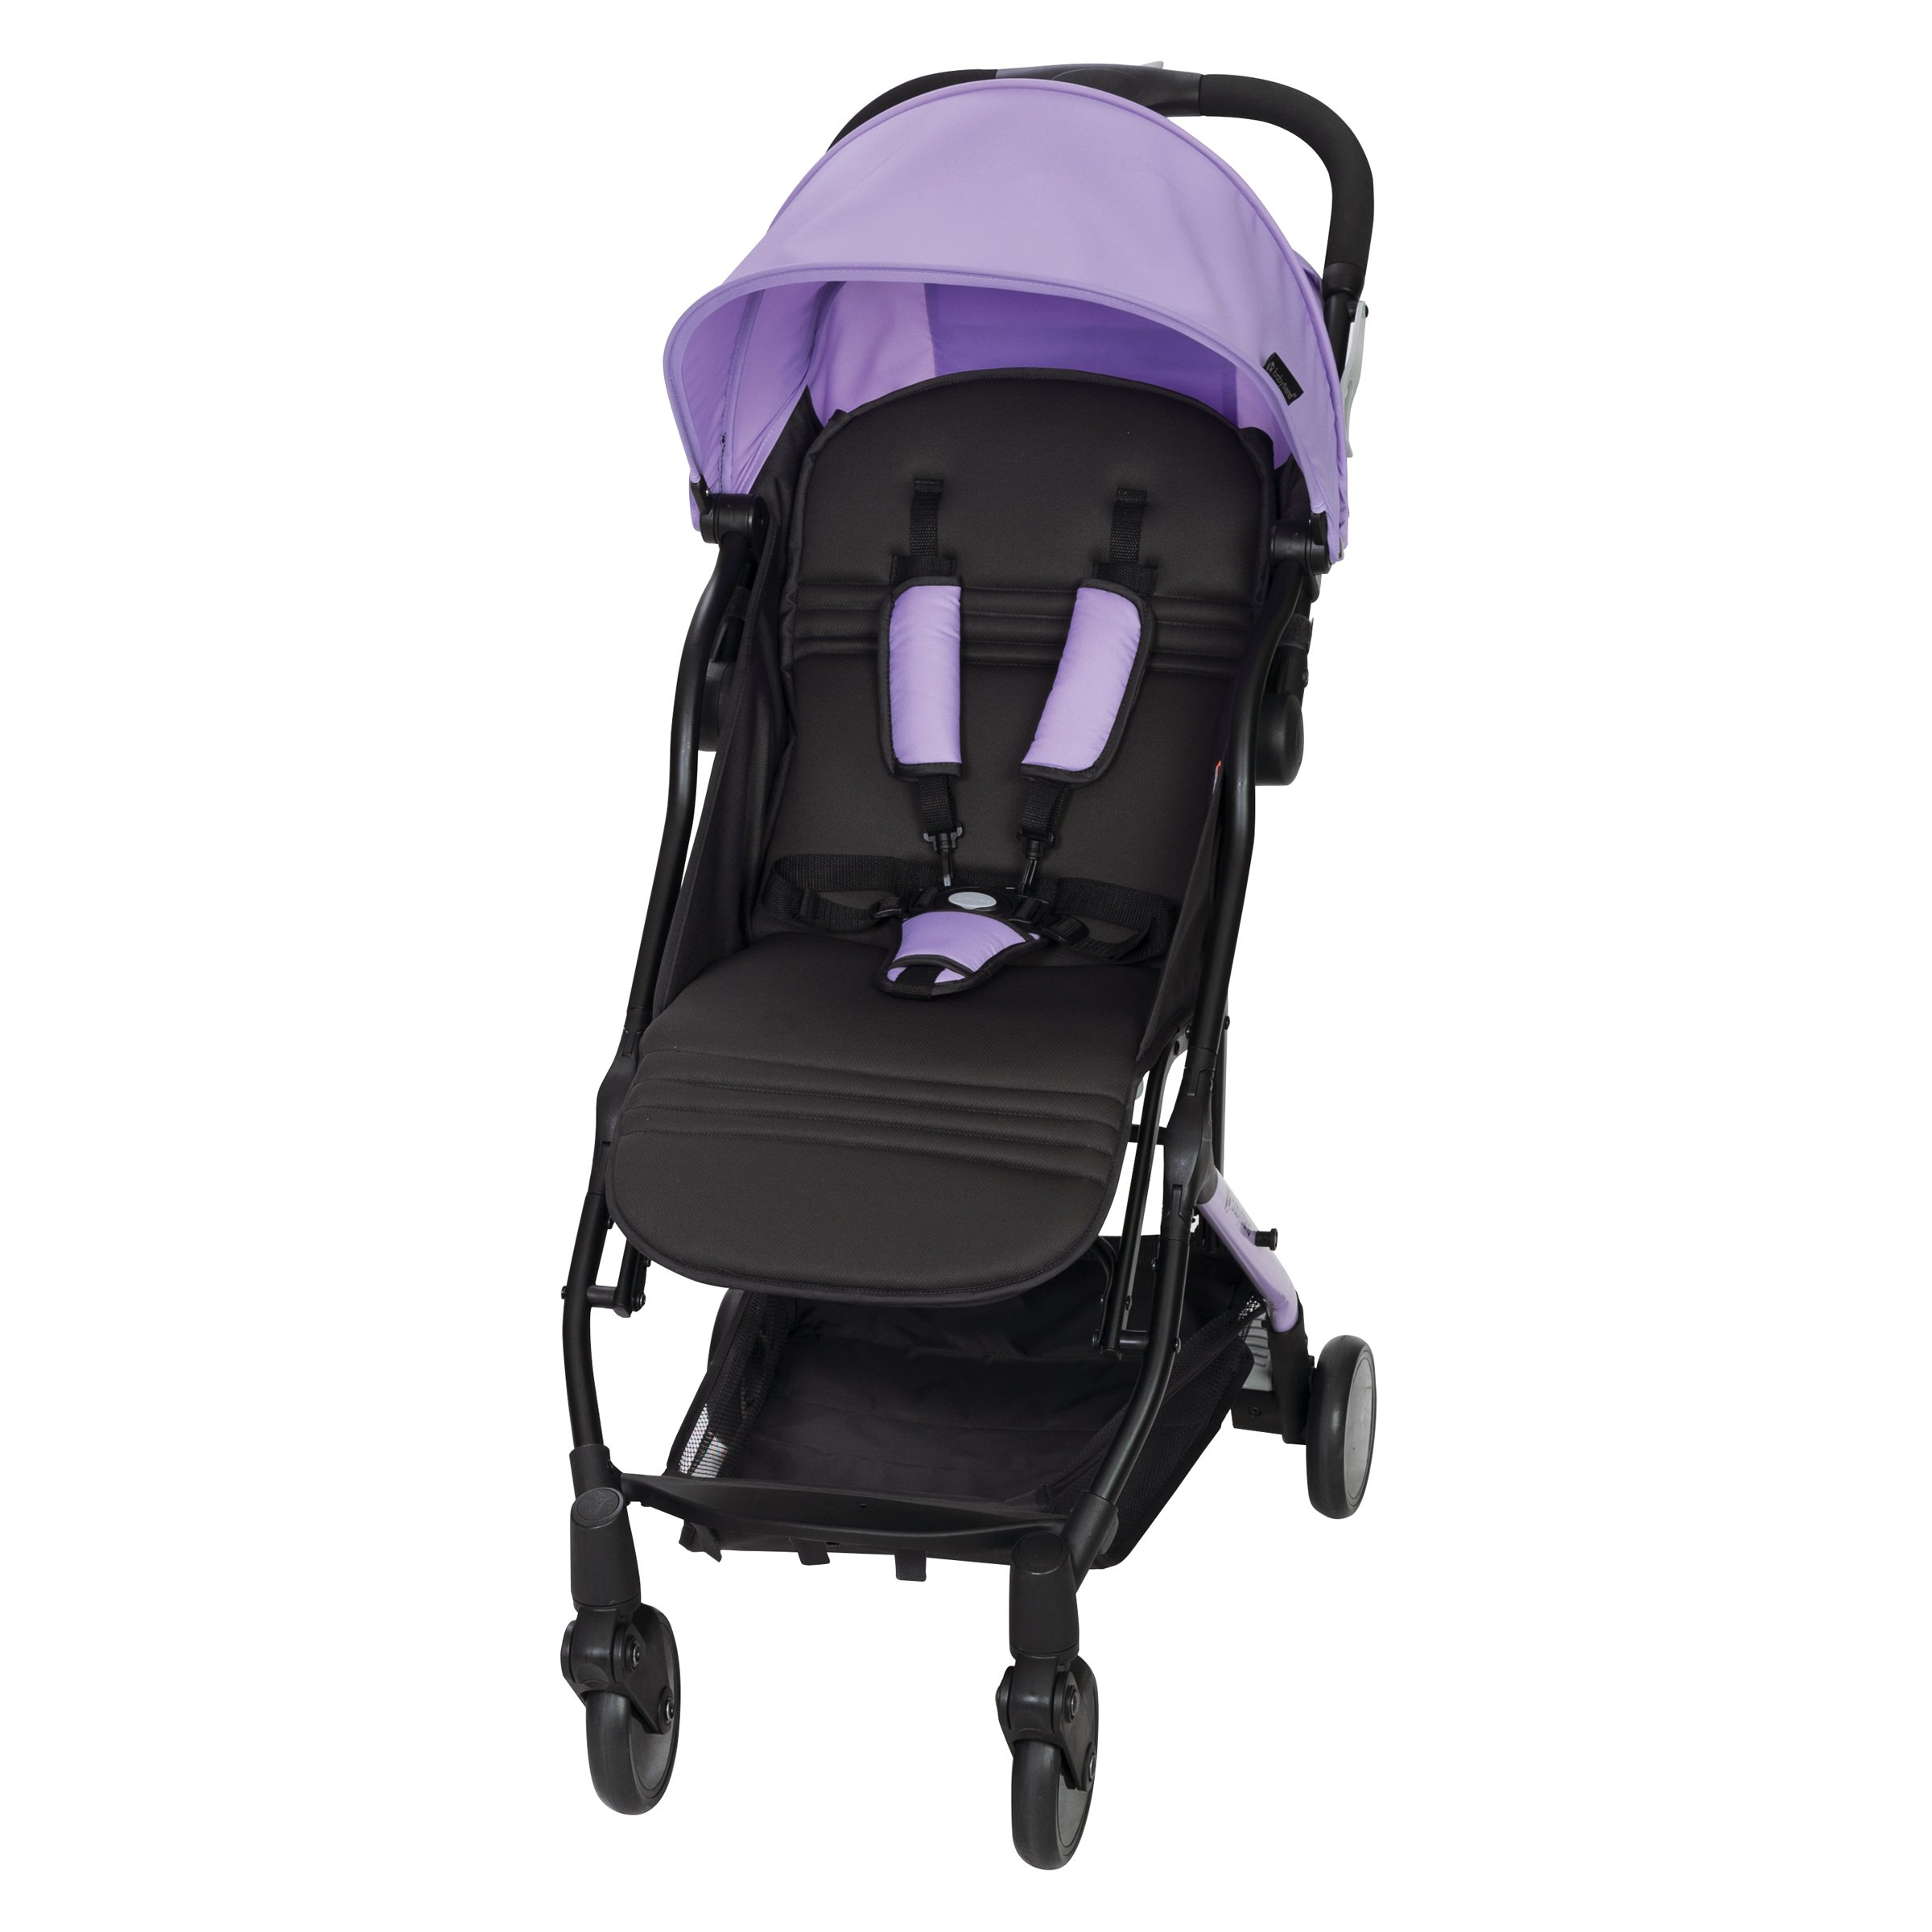 Baby Trend Tri-Fold Mini Stroller, Lilac by Baby Trend (Image #1)